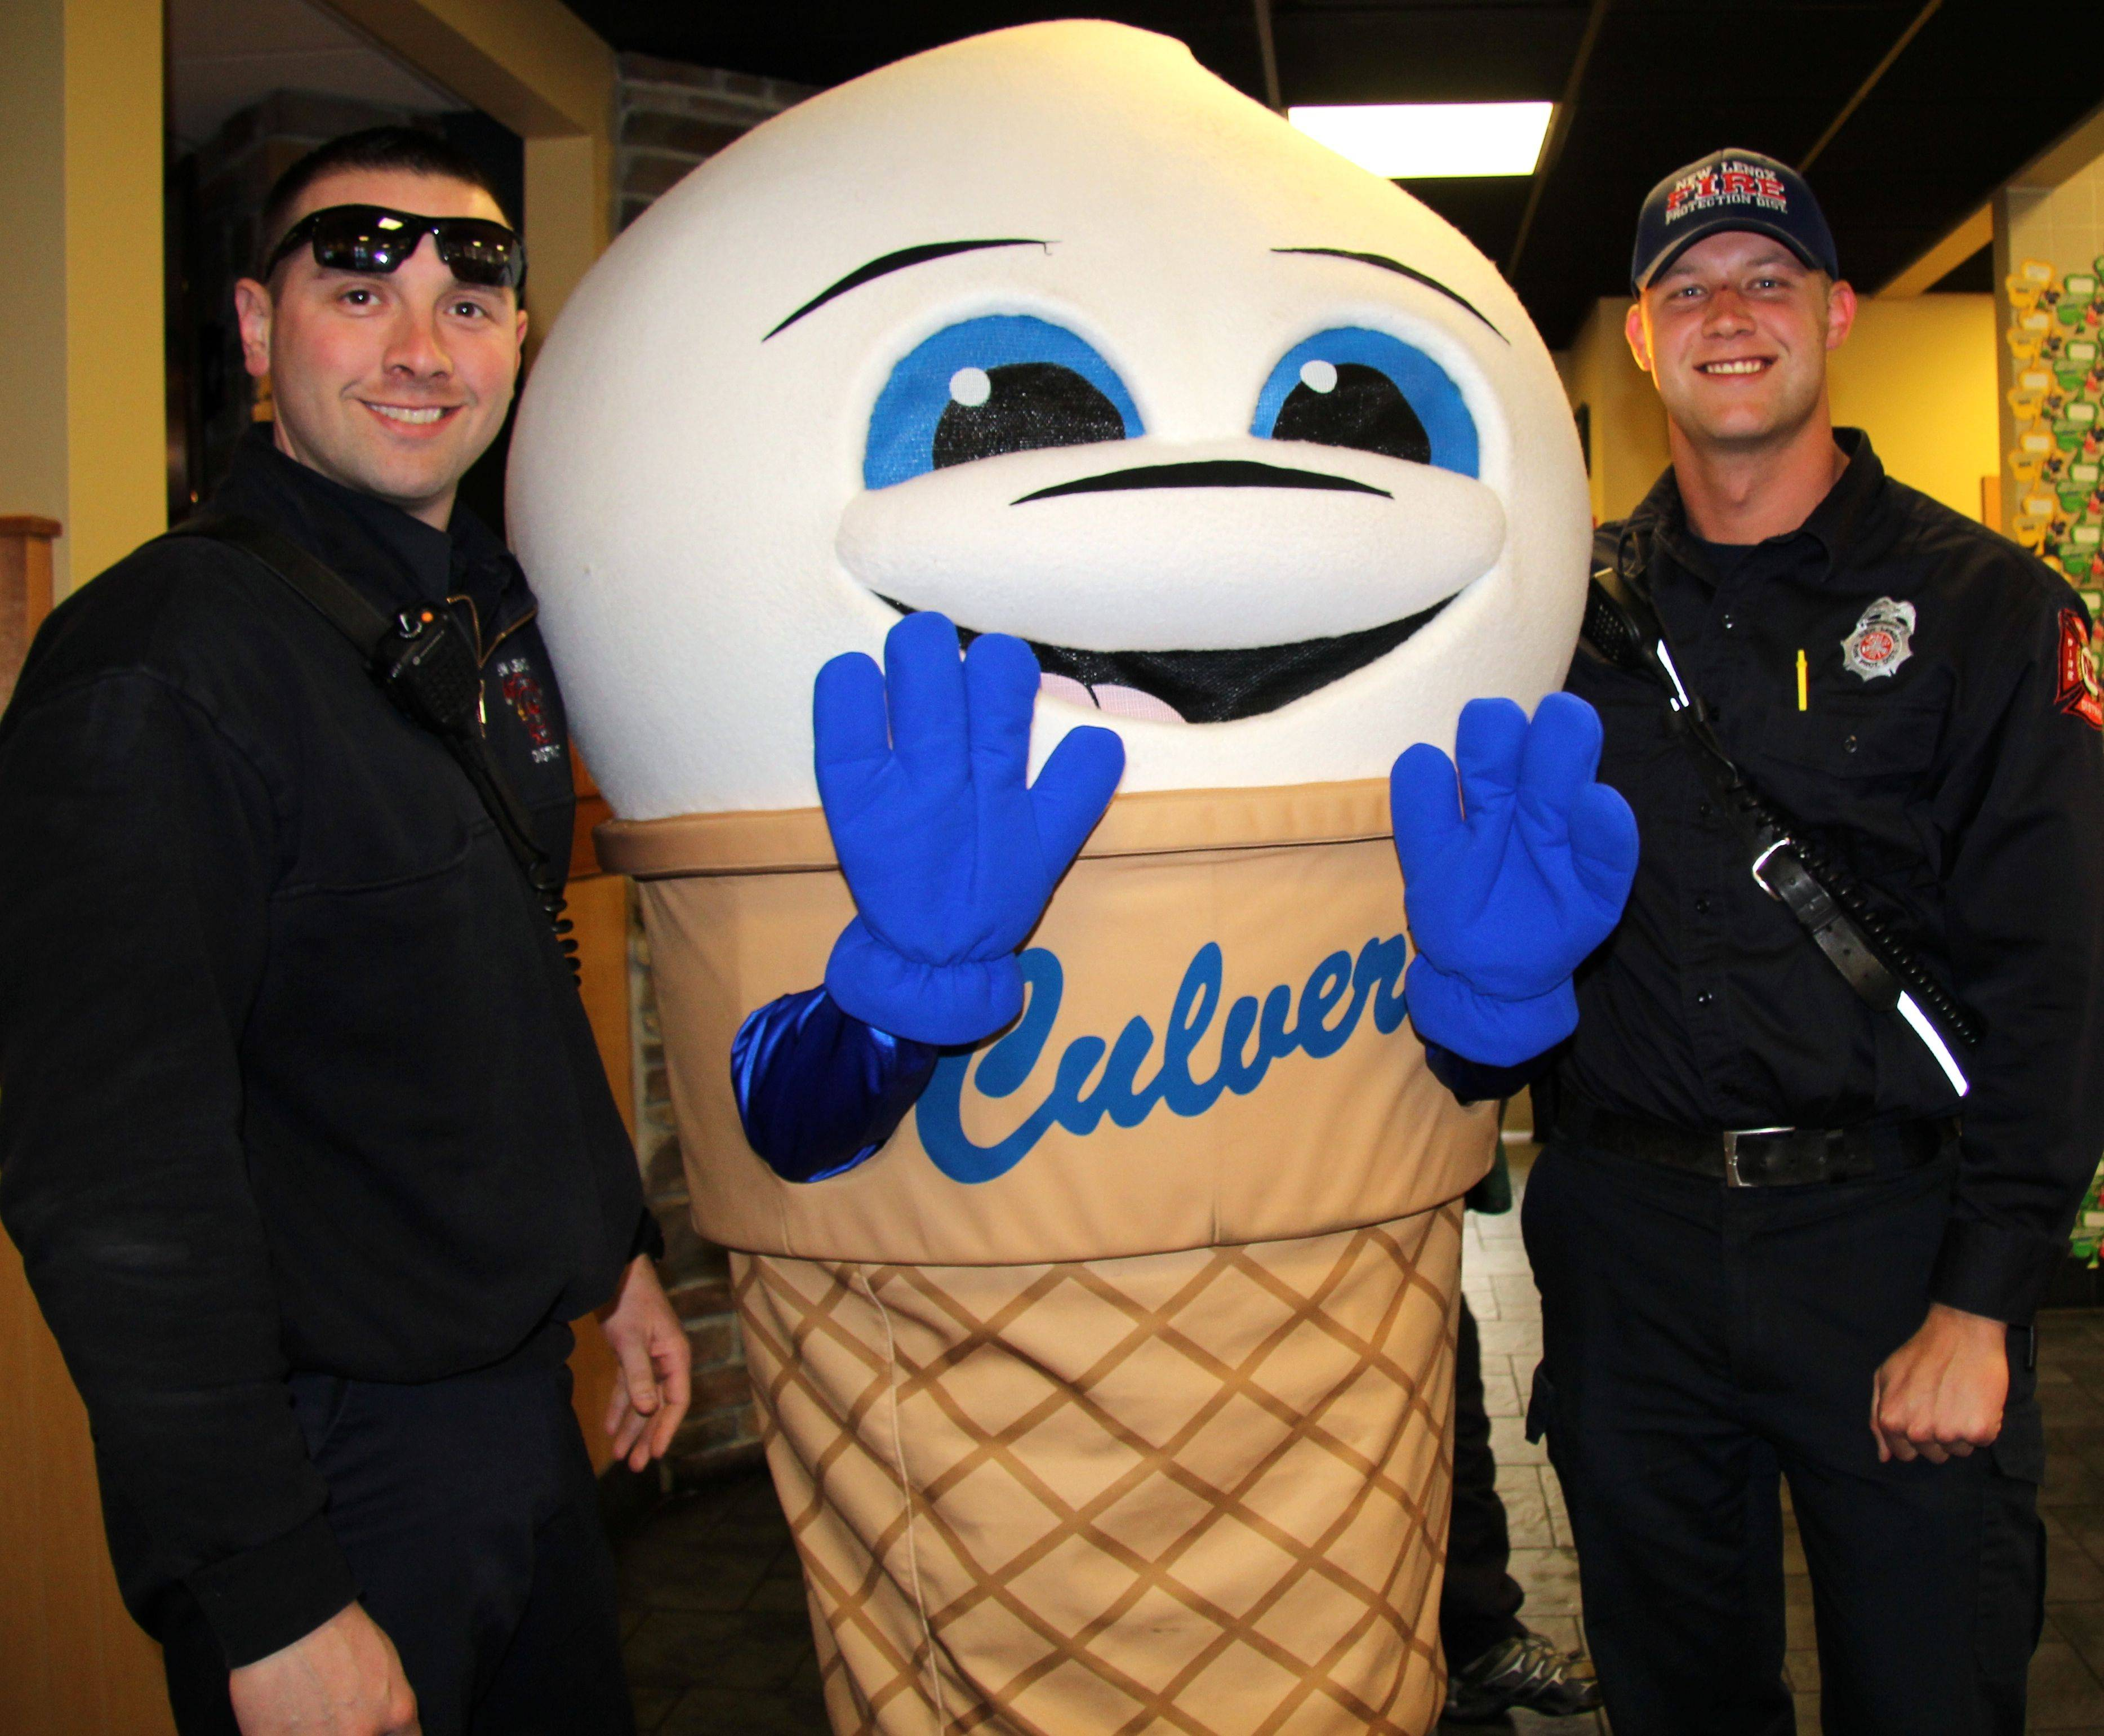 Scoopie, Culver's official mascot, takes a picture with two New Lenox firefighters during a March 4 fundraiser at Culver's of New Lenox.Dave Silbar